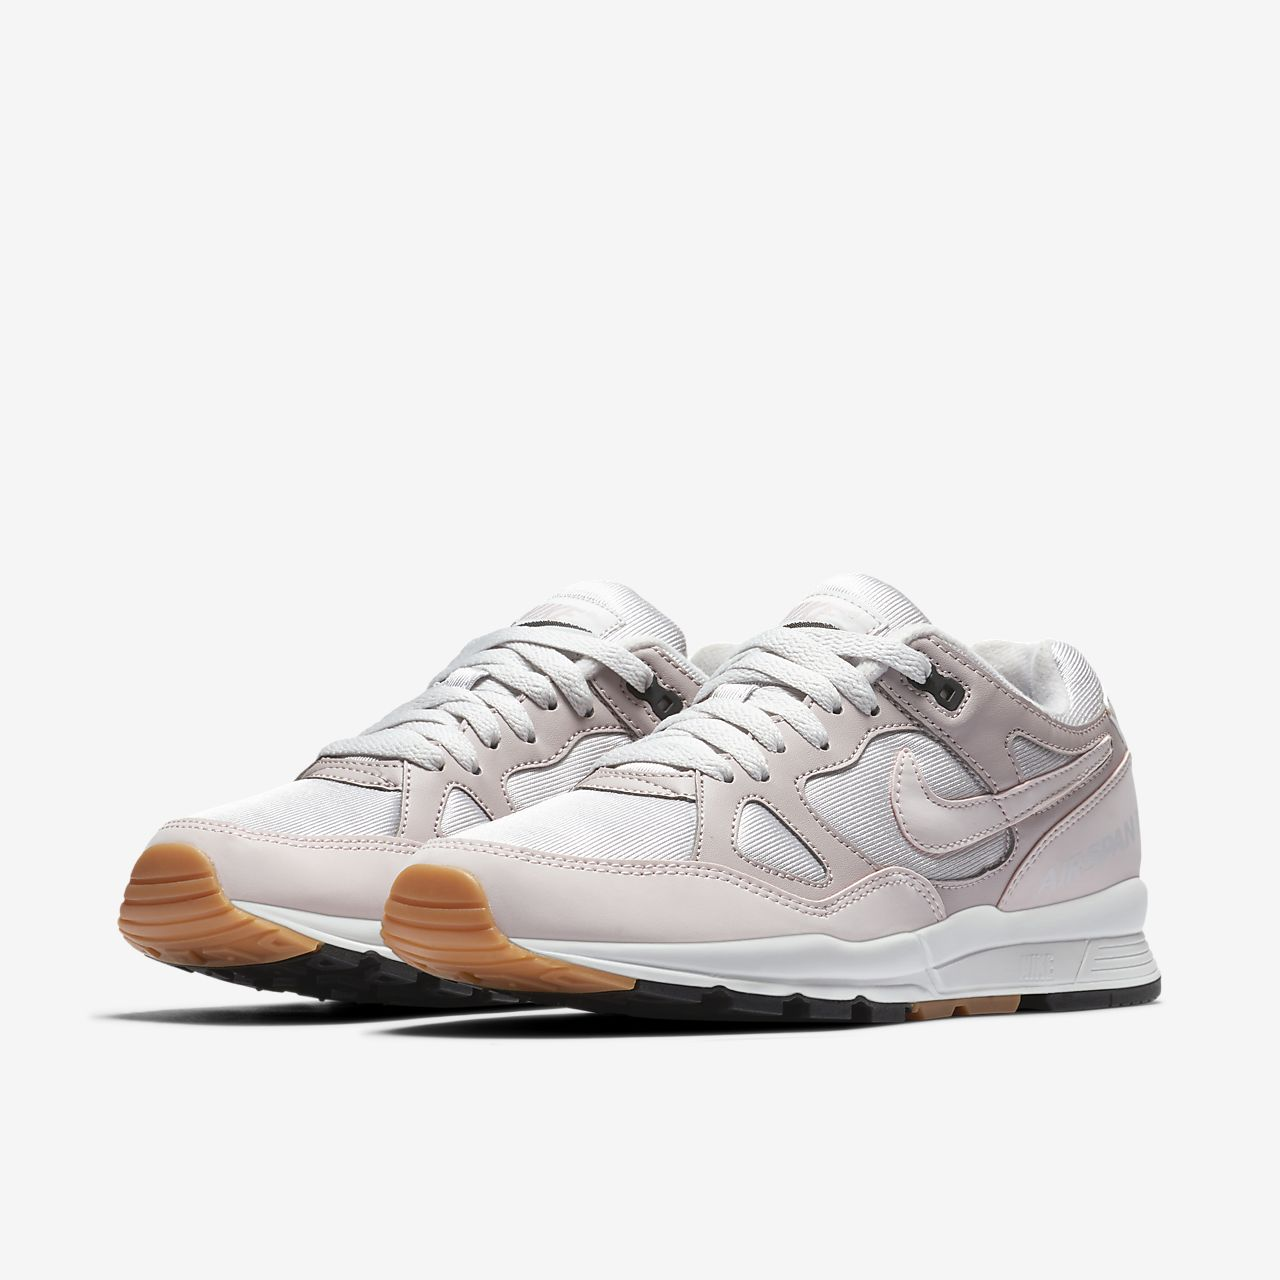 sale cheapest price Nike Nike Air Span II sneakers factory outlet online 4piVFi0G